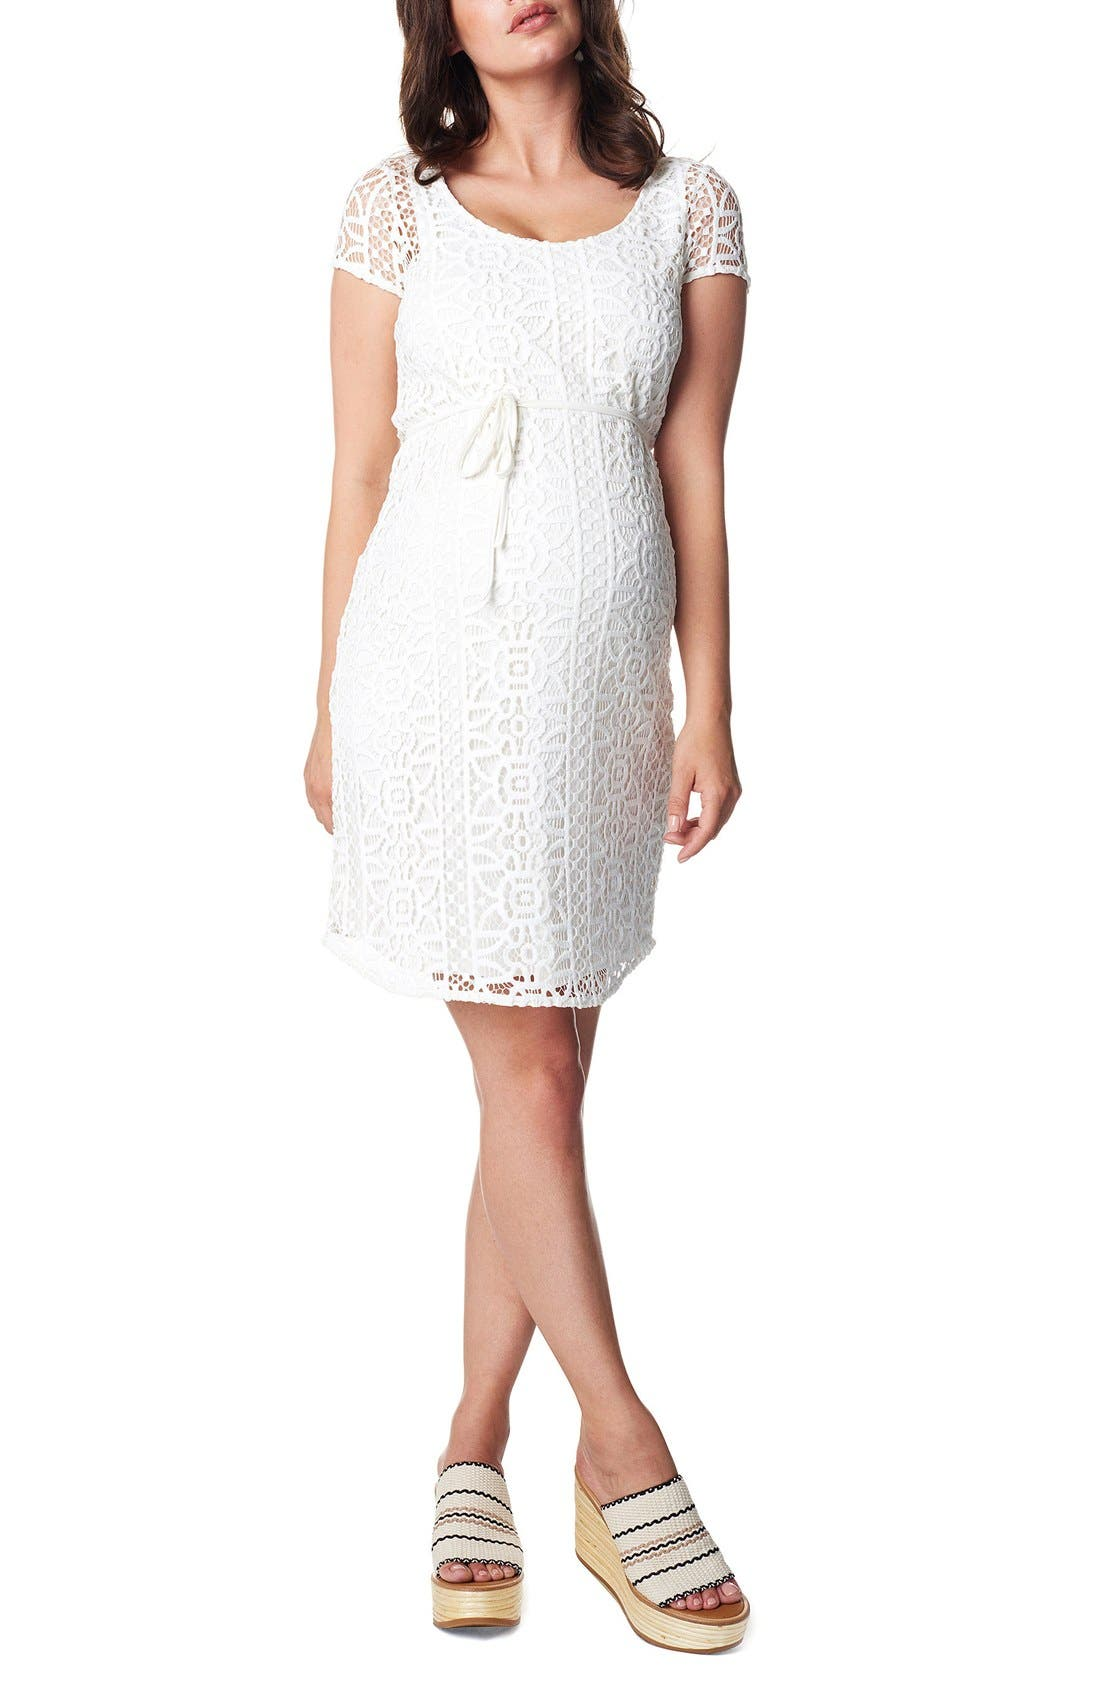 Main Image - Noppies Elise Woven Lace Maternity Dress